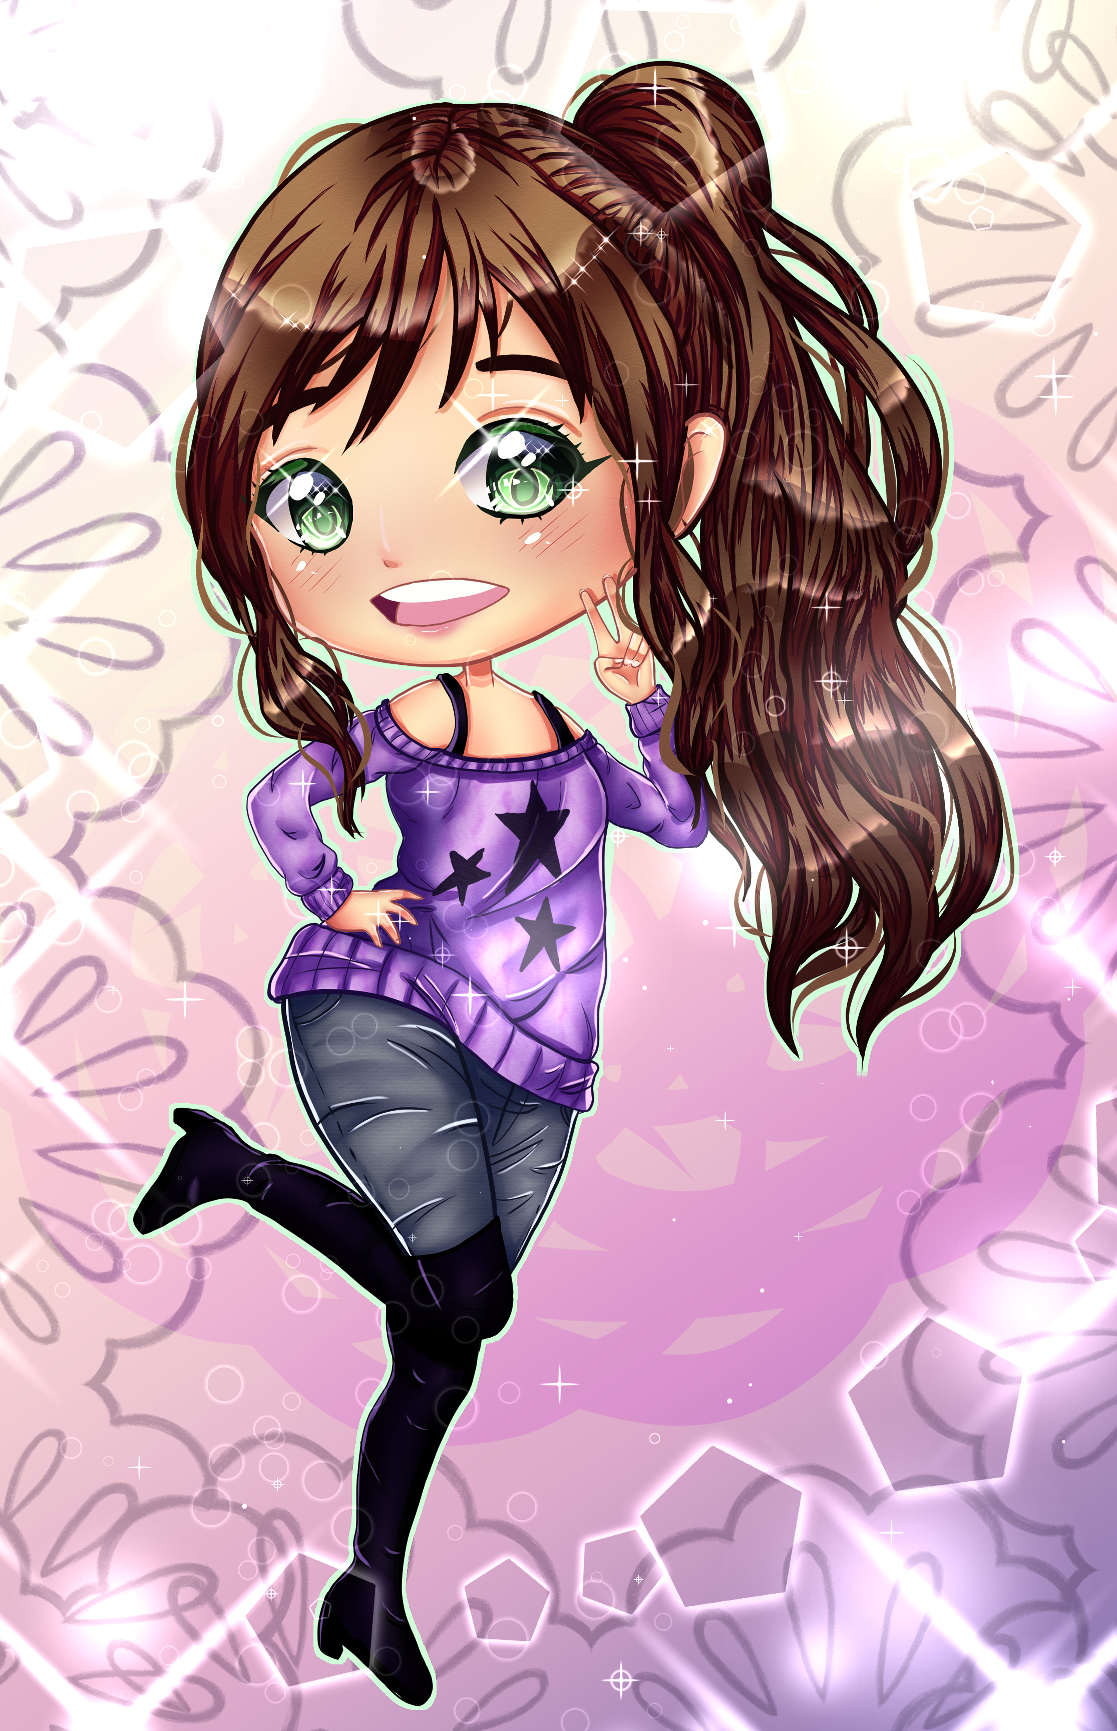 My first digital chibi! And it's of my OC Lysenne. (I have way too many characters xD I haven't shown you half of them xD) #anime girl#anime art#animeart#animegirl #anime / manga #digitalart#digital drawing#digitalIllustration#Digital Illustration#digital art#original character#originalCharacter#chibi#kawaii chibi